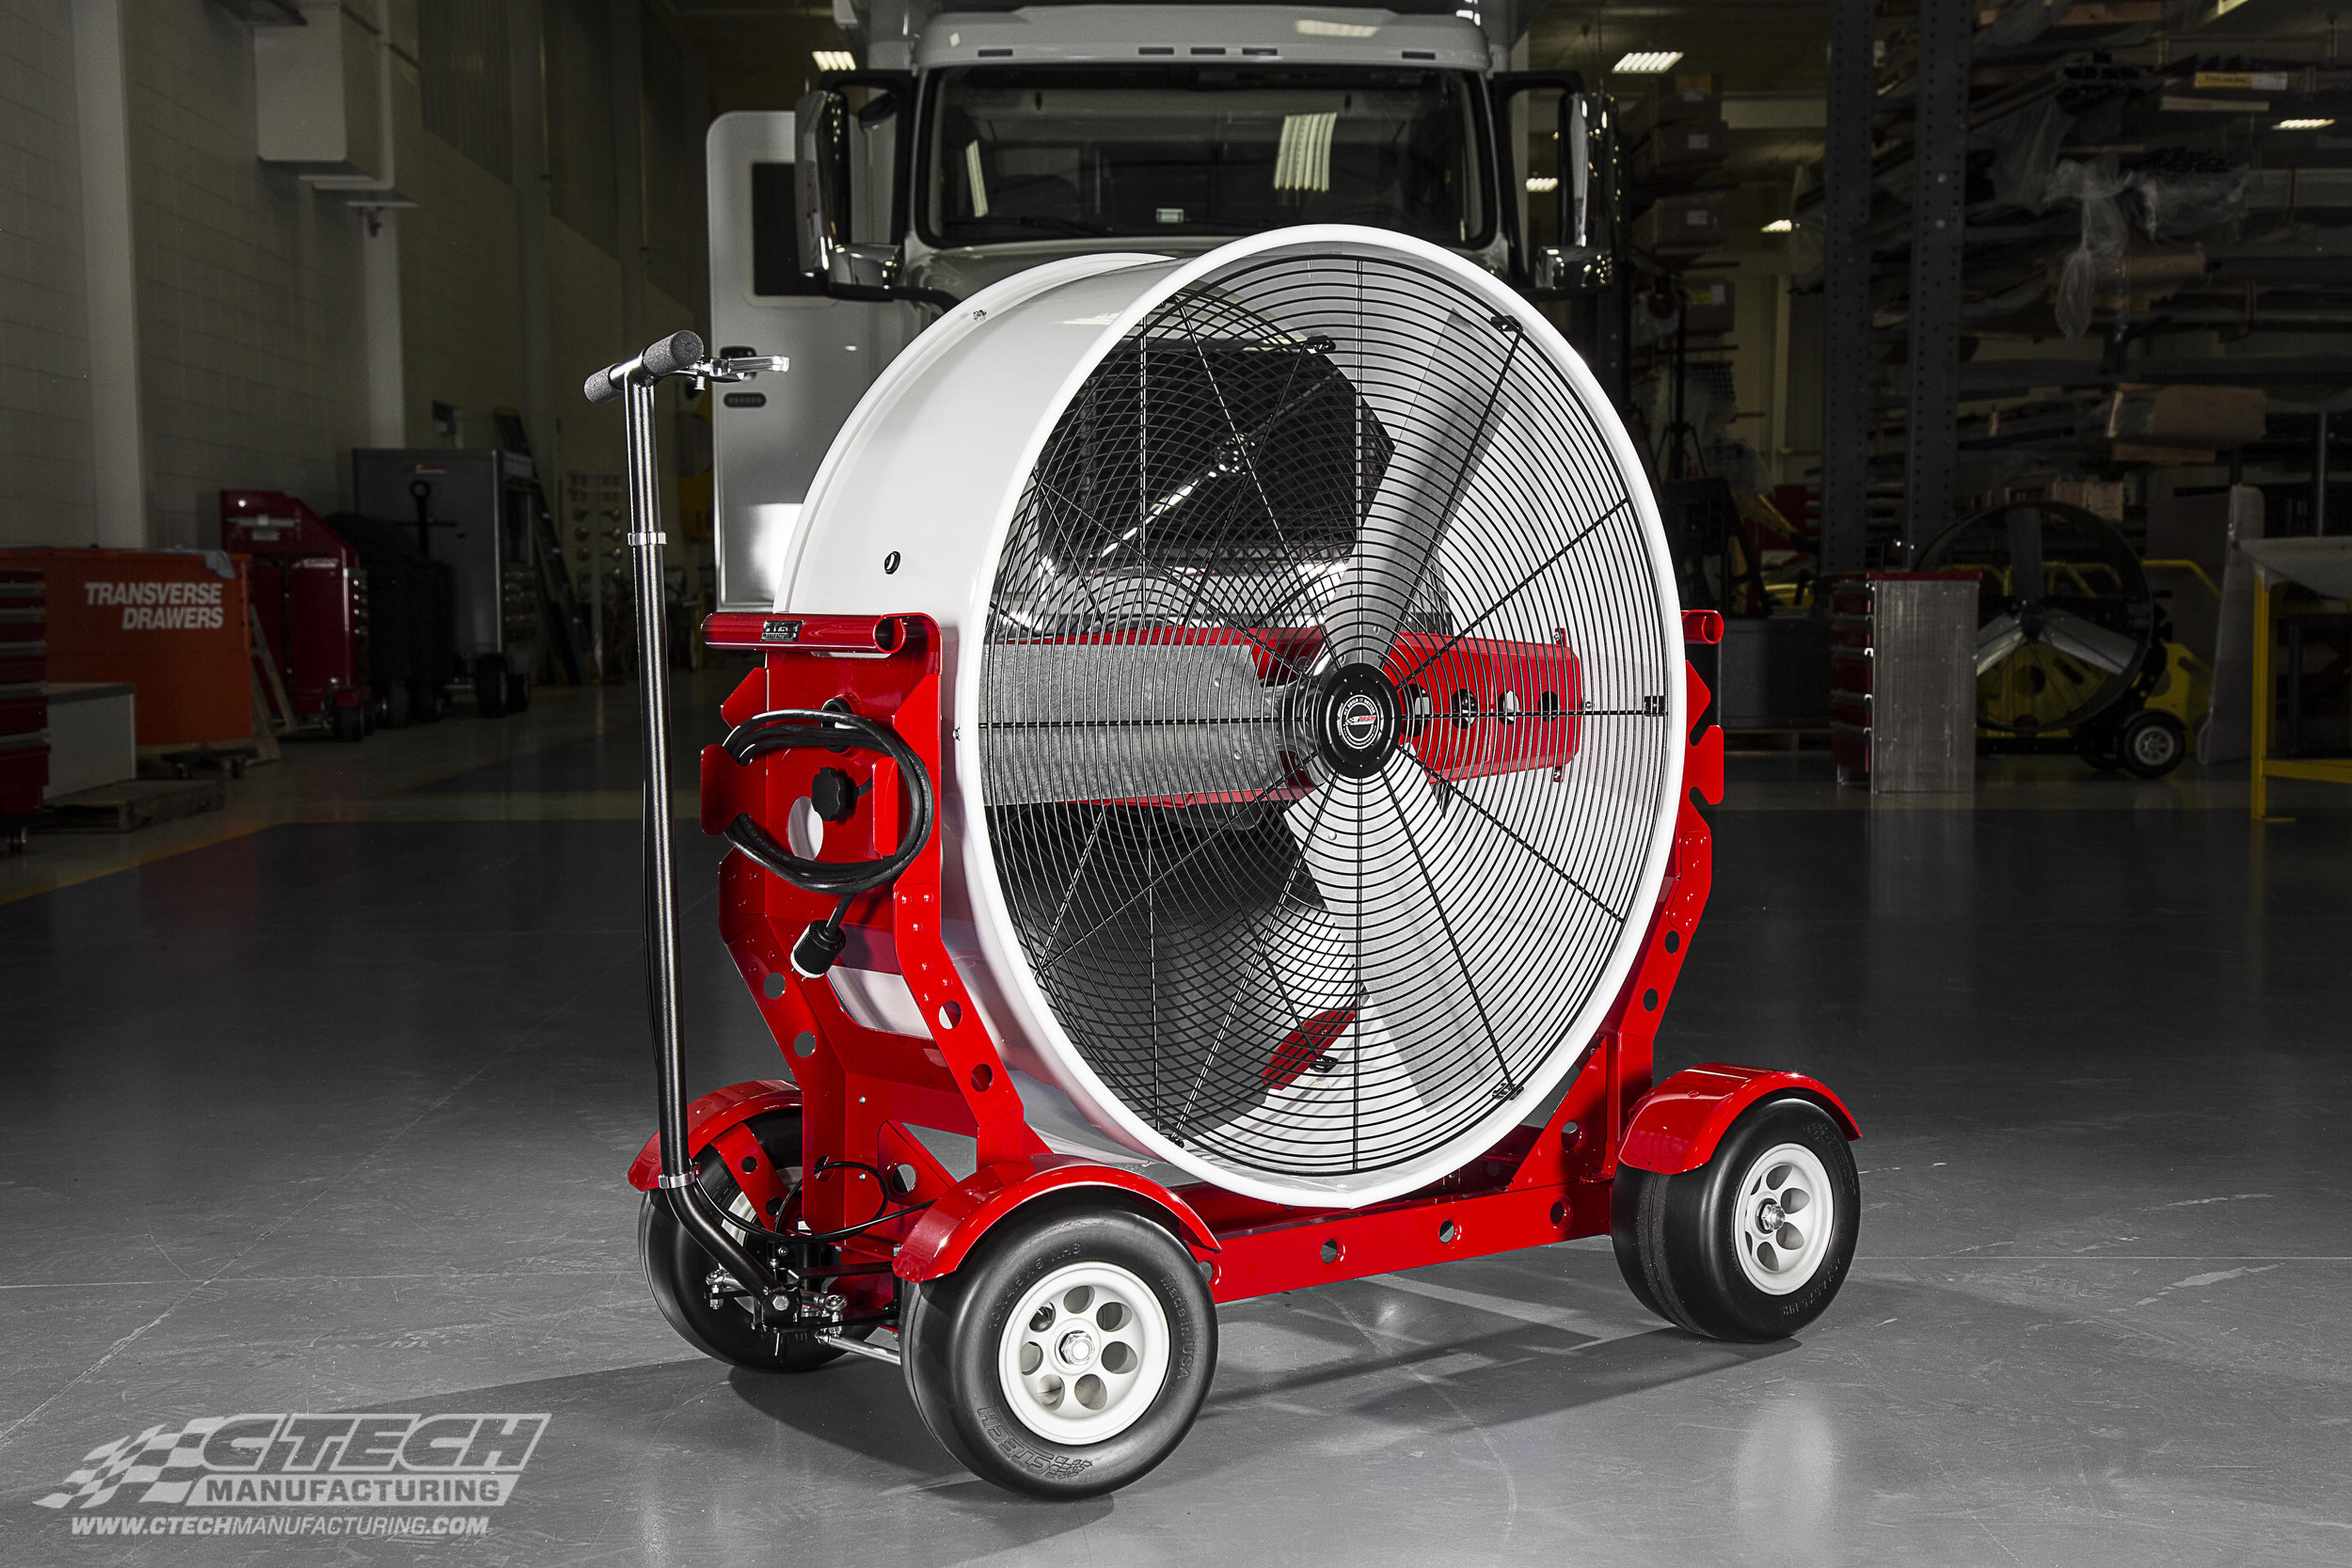 CTECH offers the most durable, functional, and aesthetically advanced carts in the storage industry. Whether you need a fully customized storage unit, or a fan to keep you cool in the heat of the moment, CTECH offers the quickest turnaround and the highest quality product.